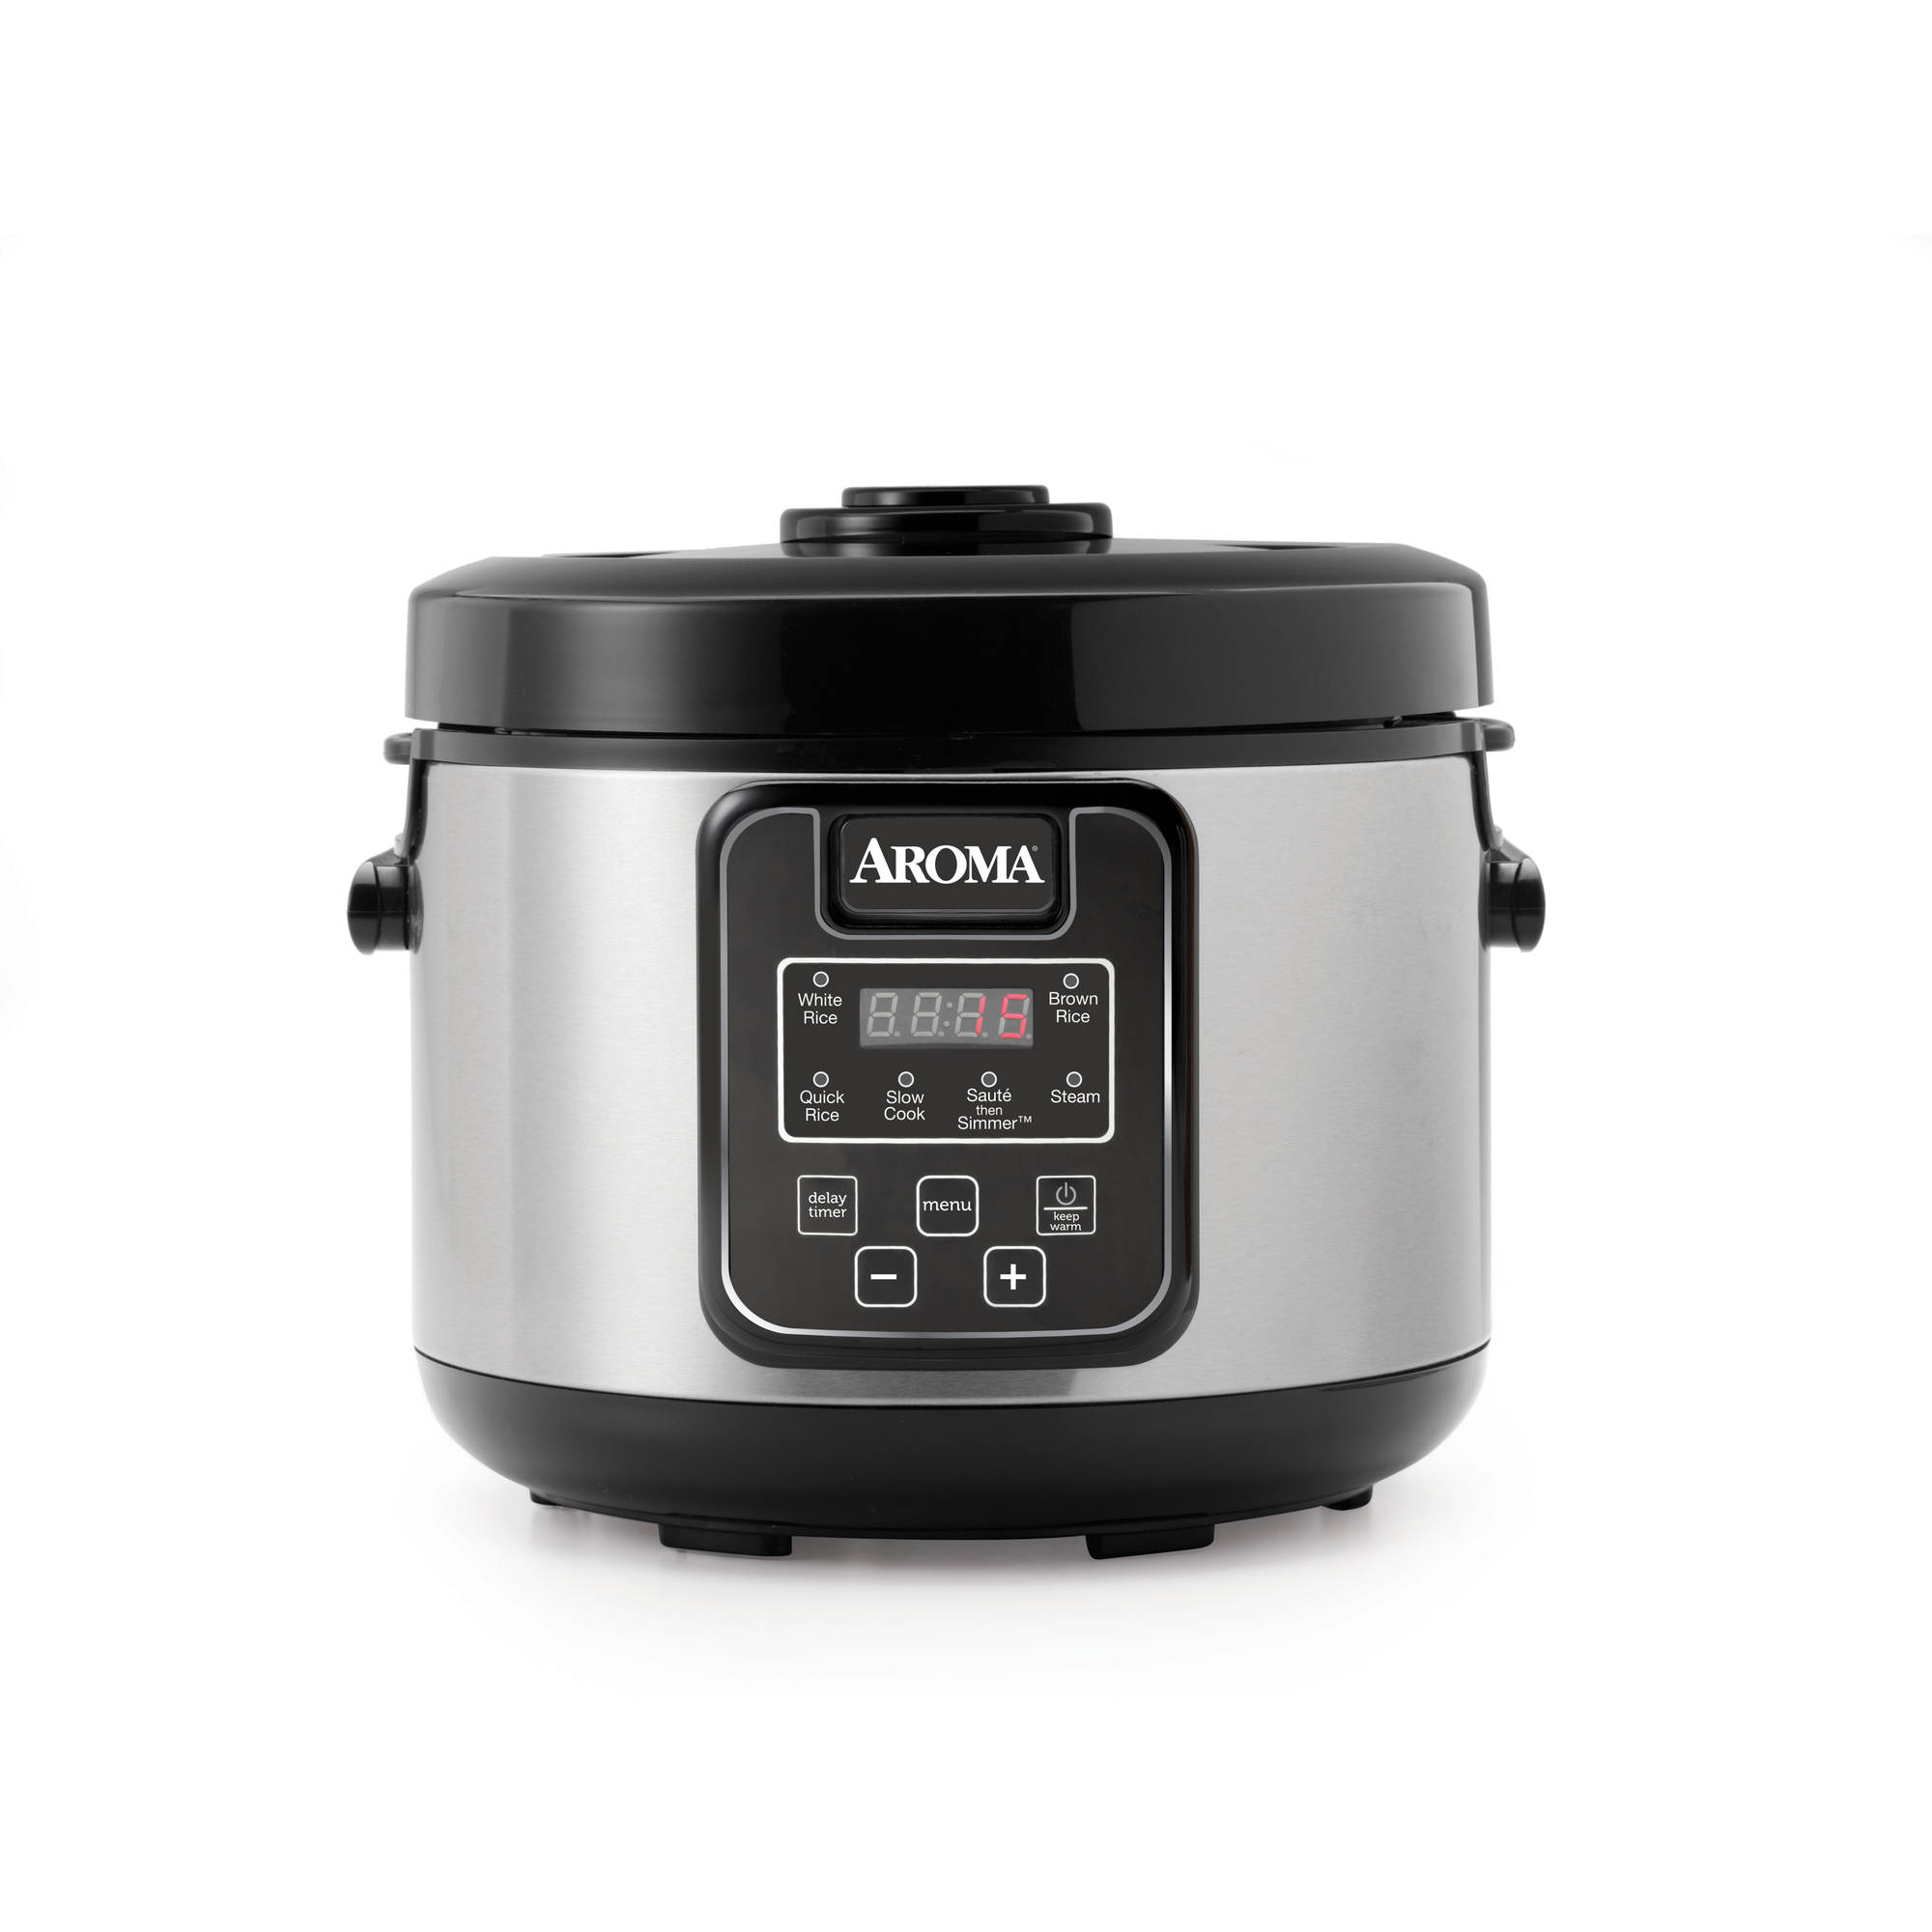 Aroma 16-Cup Digital Rice Cooker, Slow Cooker and Food Steamer ...